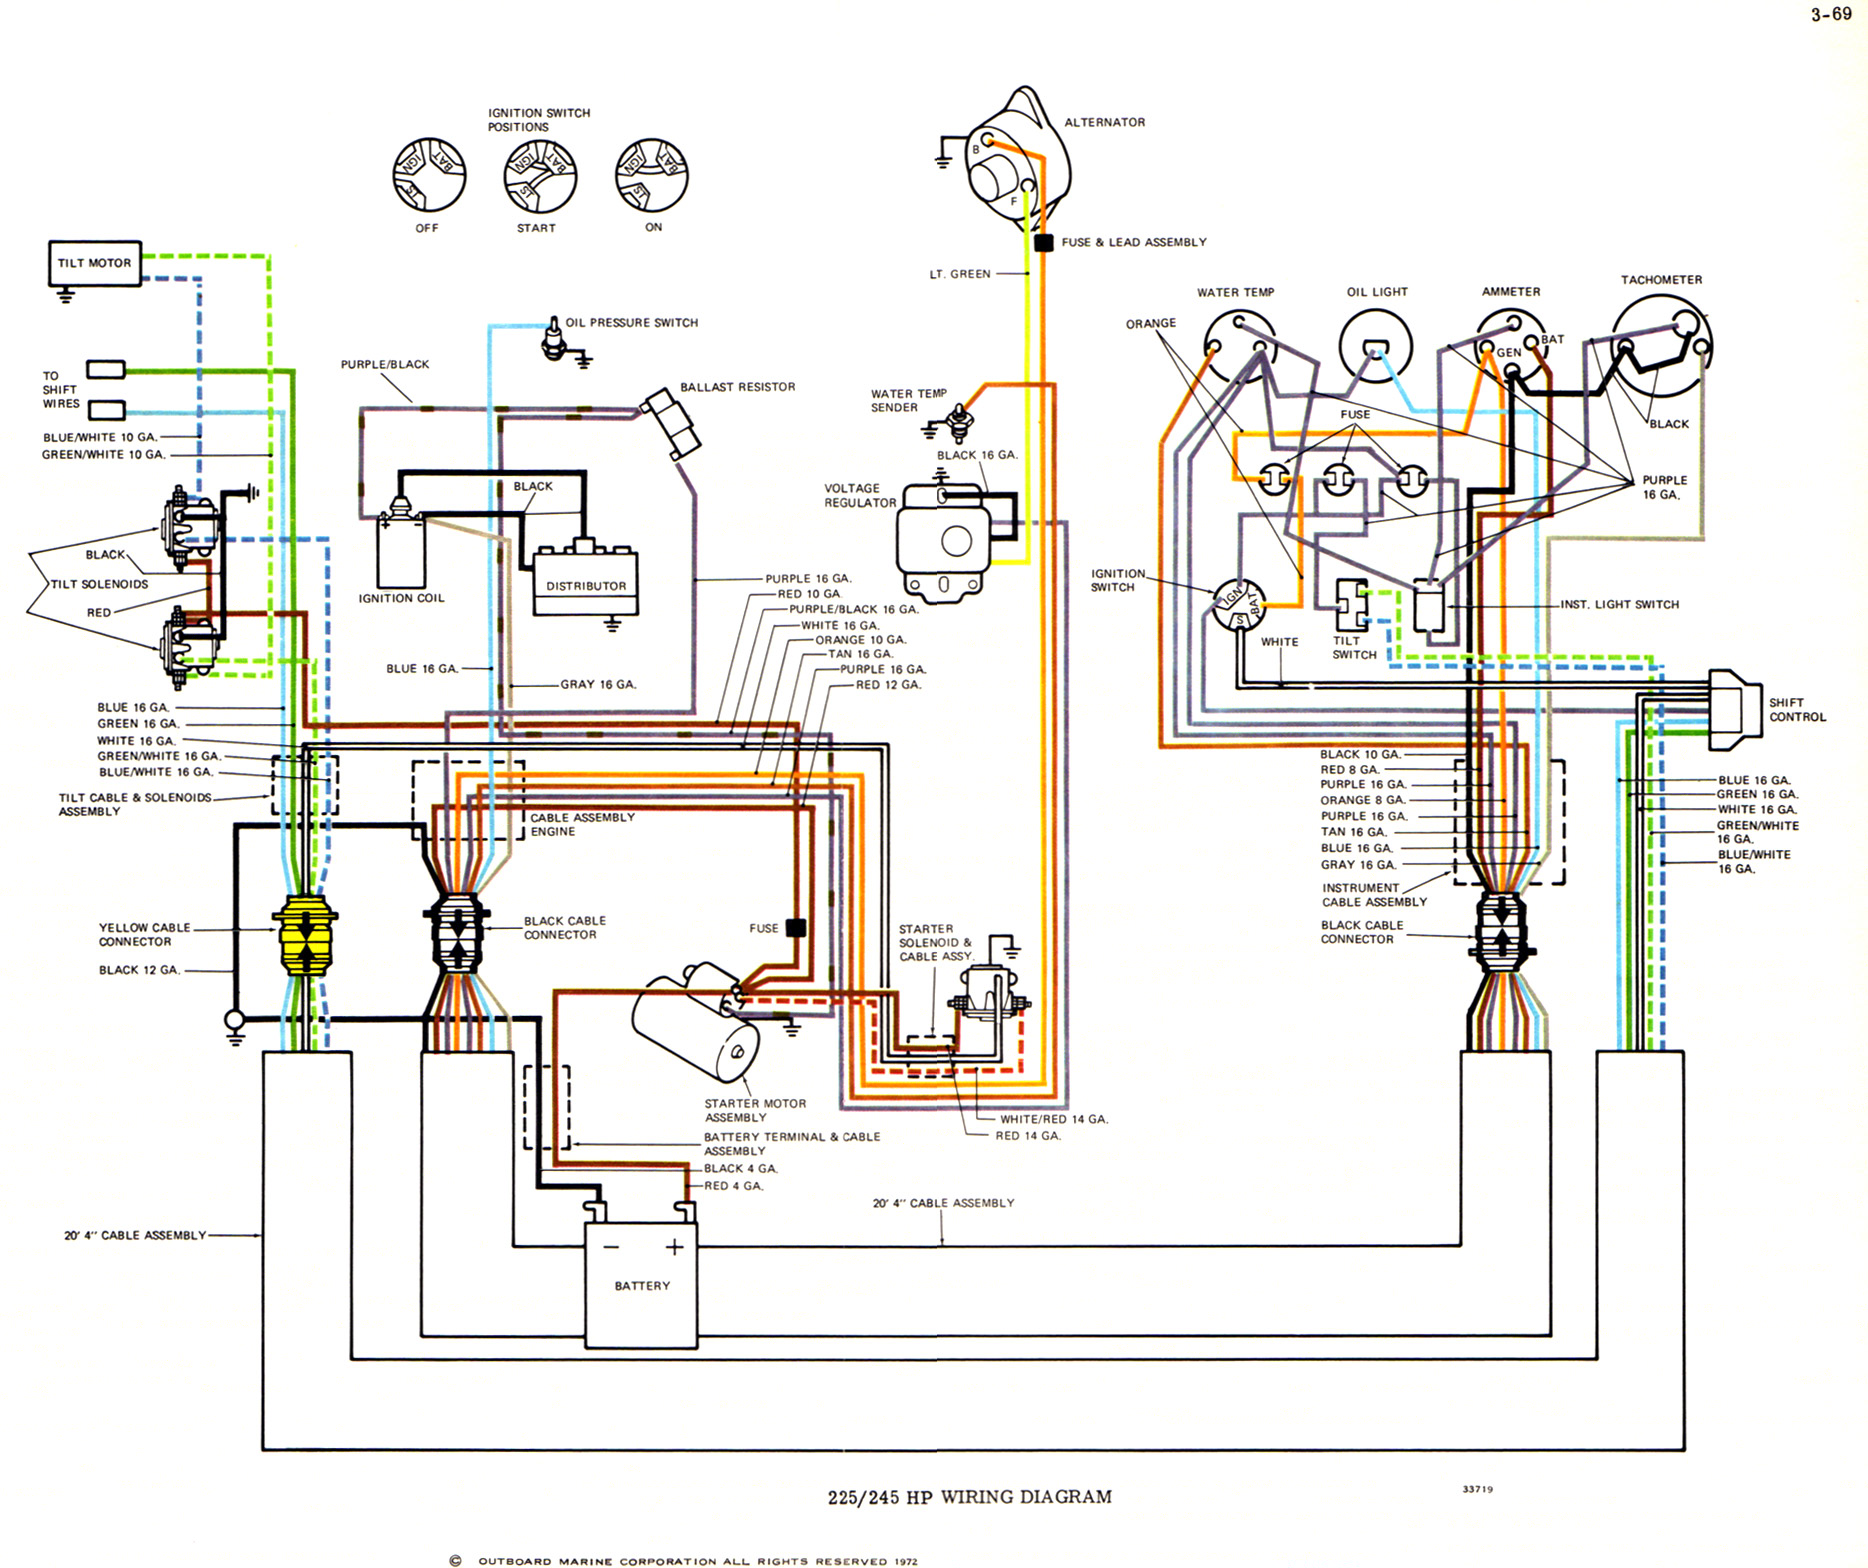 Omc Schematic Diagrams Wiring Diagram Schematics Key Switch Starting Know About U2022 1985 Ignition